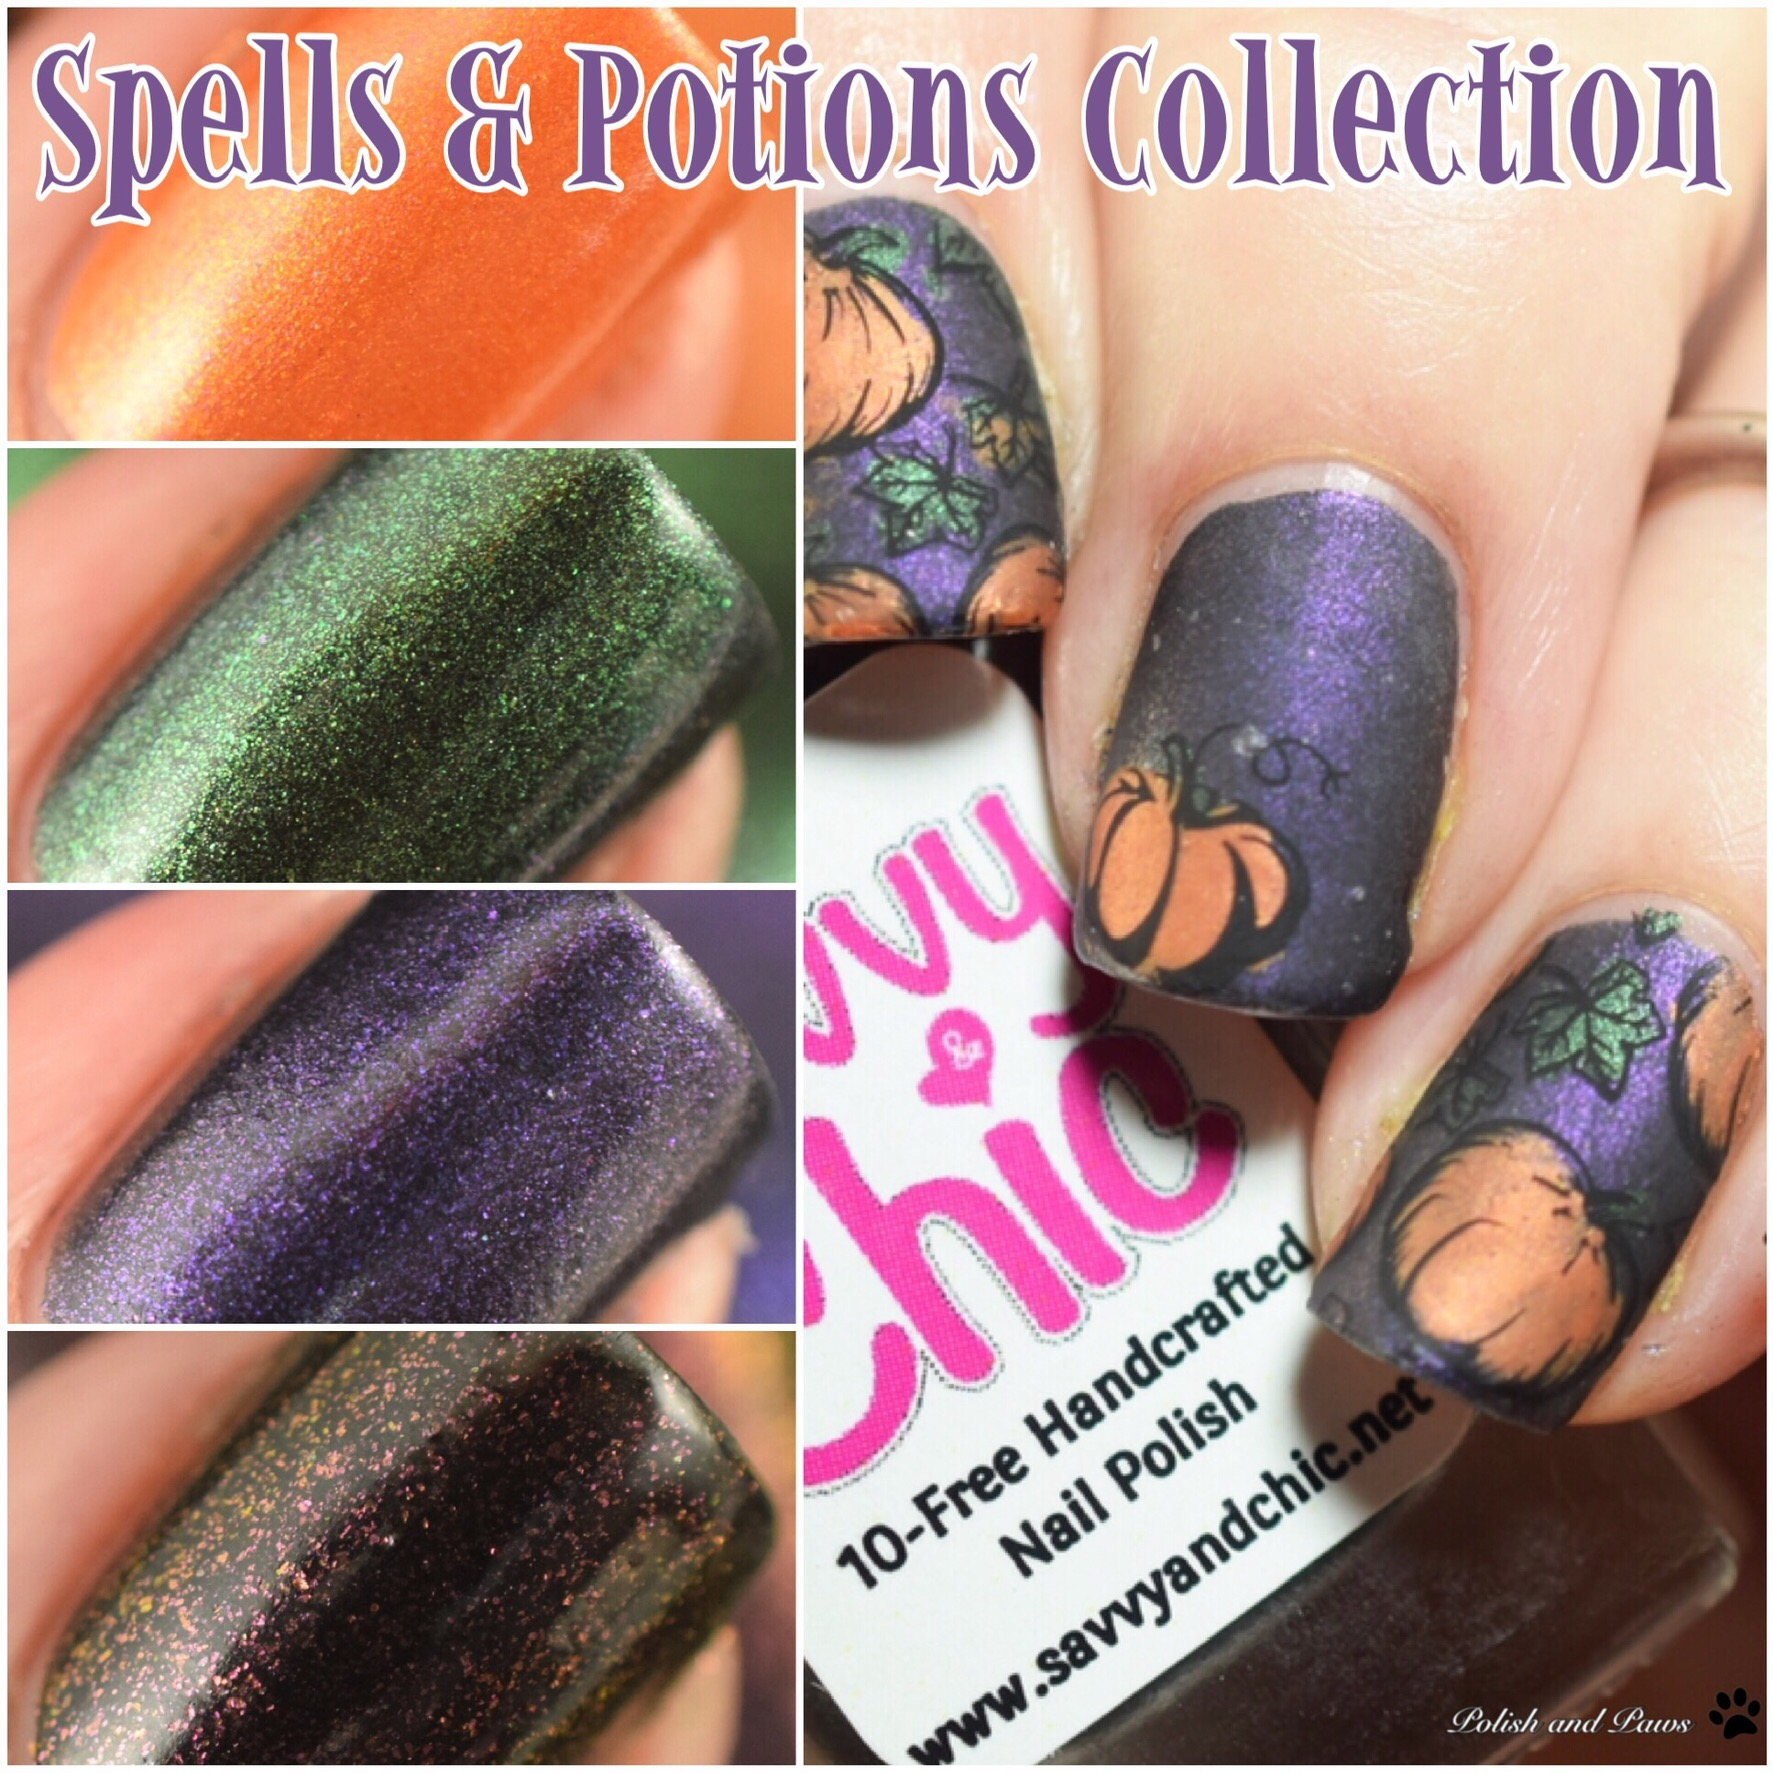 Savvy & Chic Lacquer Spells & Potions Collection